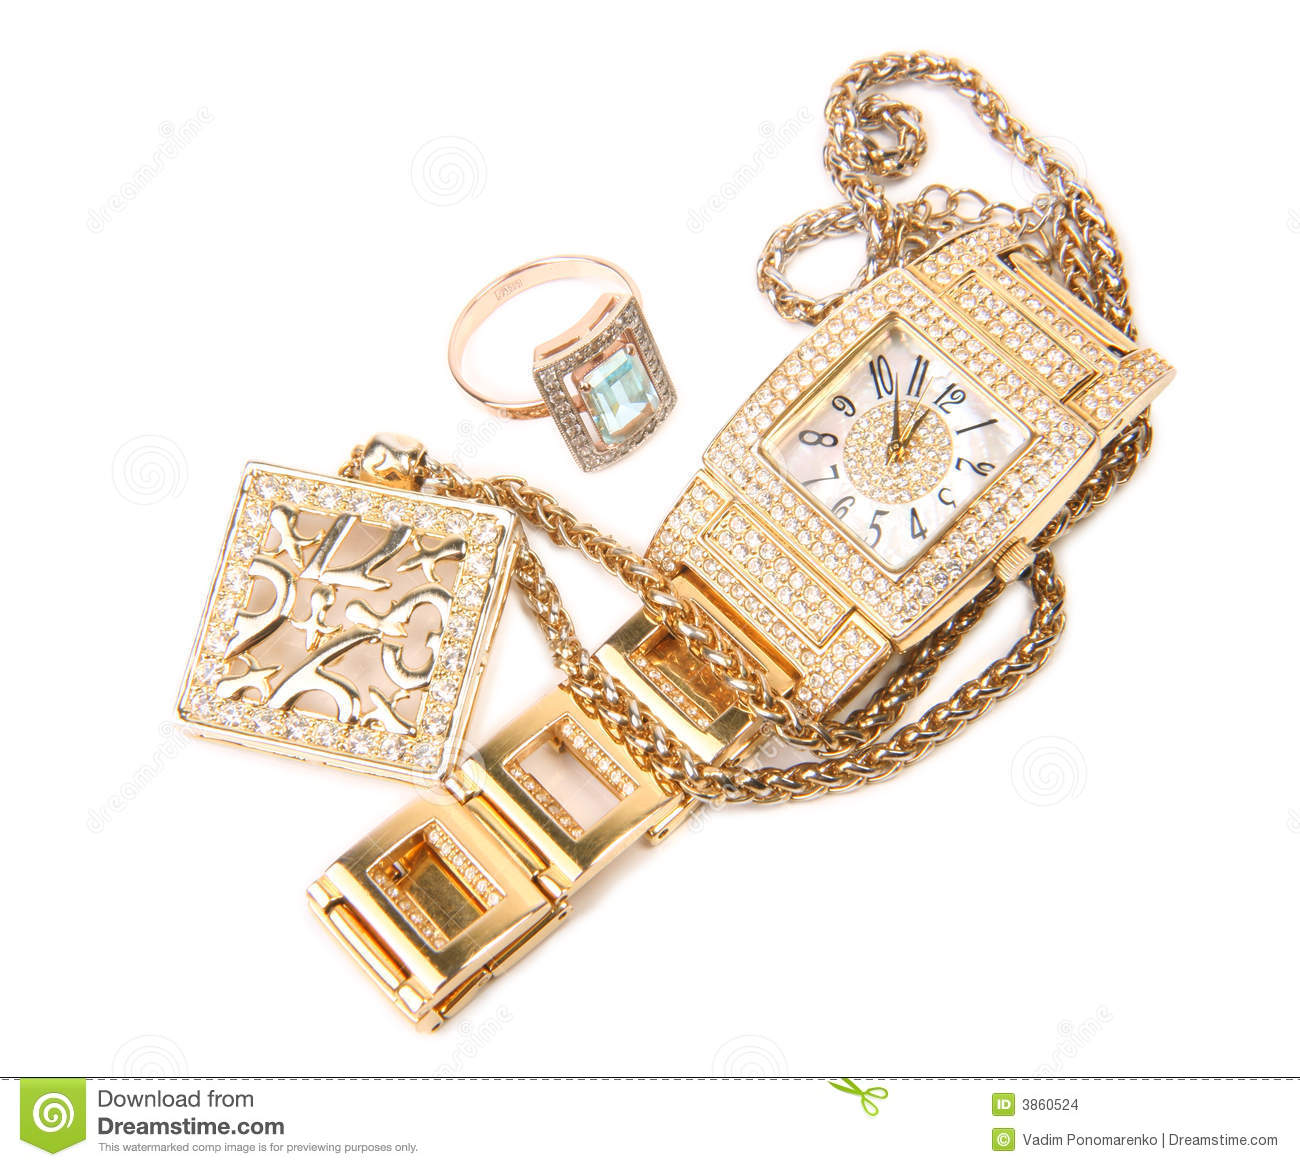 Golden watch, ring and necklace.